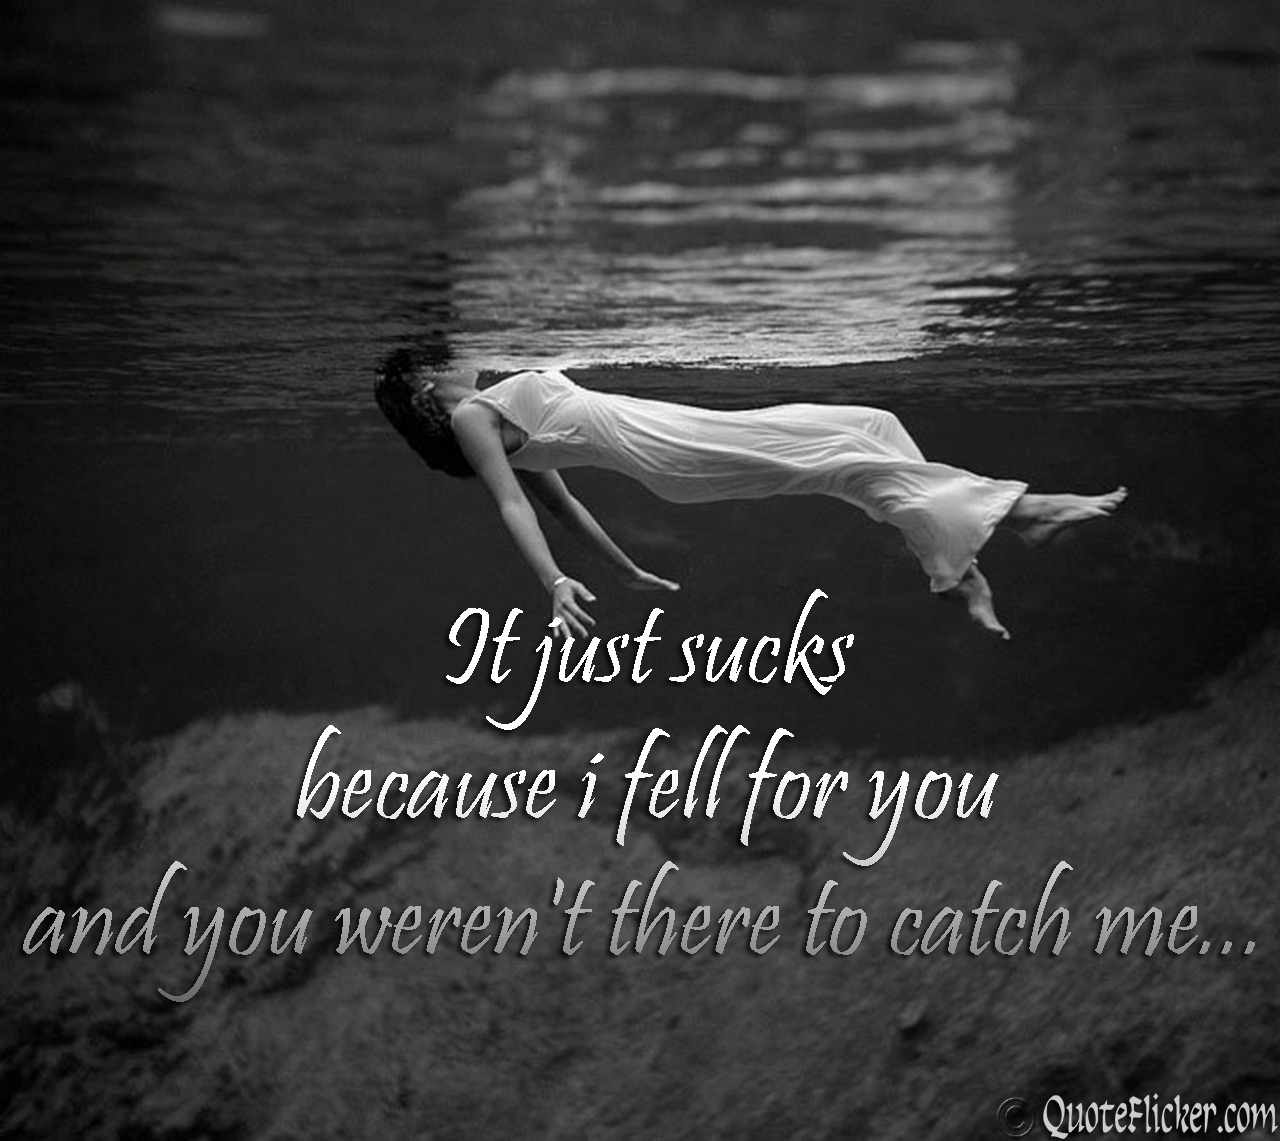 I Fell For You Quotes Collection